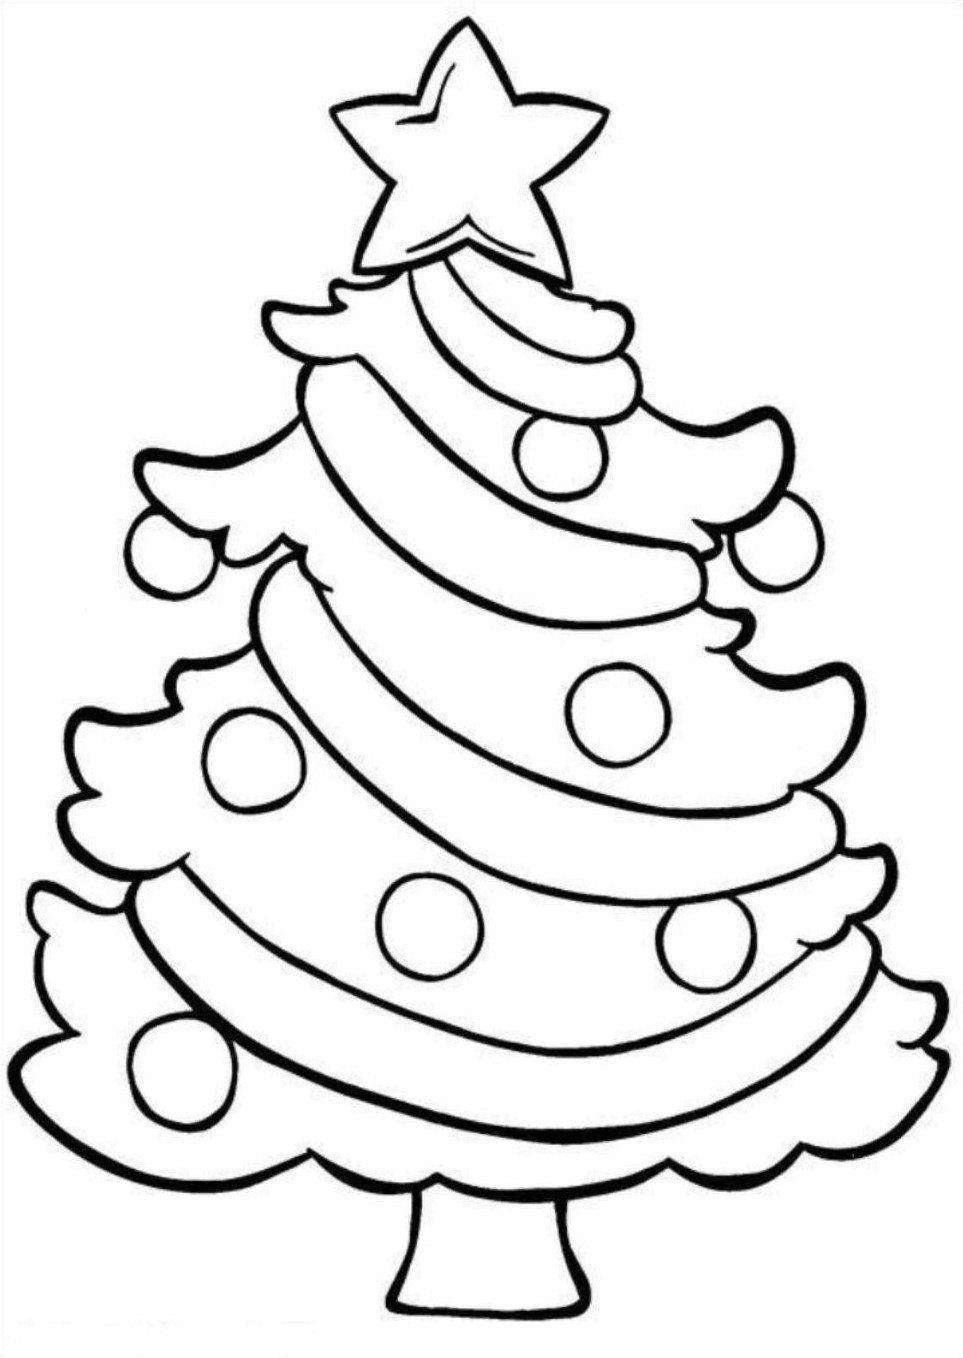 Coloring Pages Of Christmas Tree With Easy